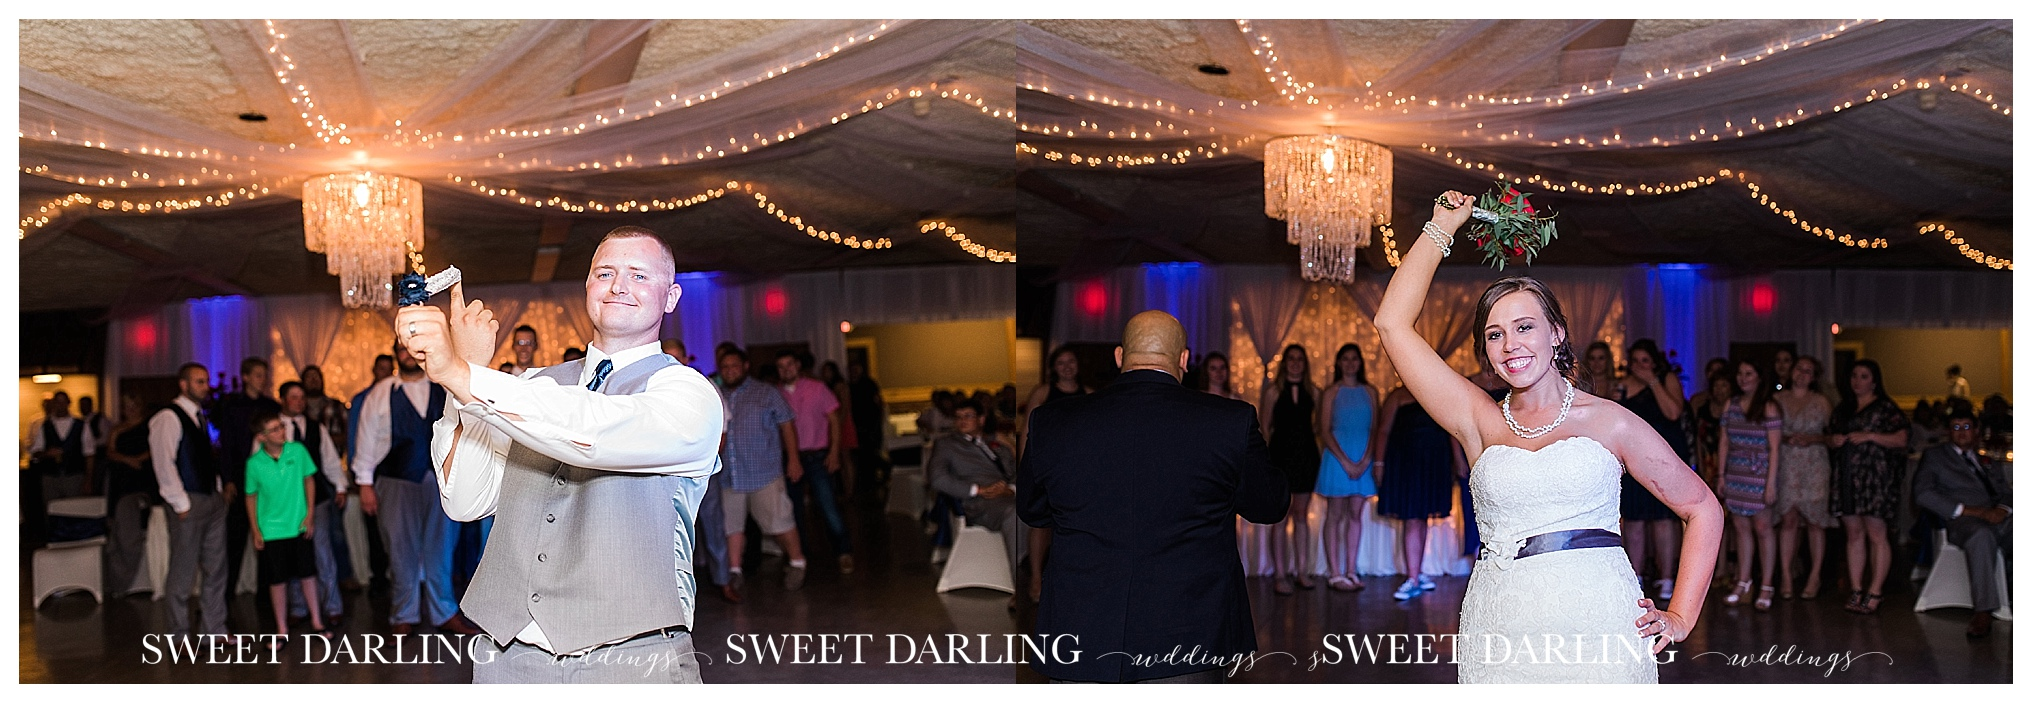 champaign-county-royal-paxton-illinois-sweet-darling-weddings-photography-red-navy-roses_1402.jpg